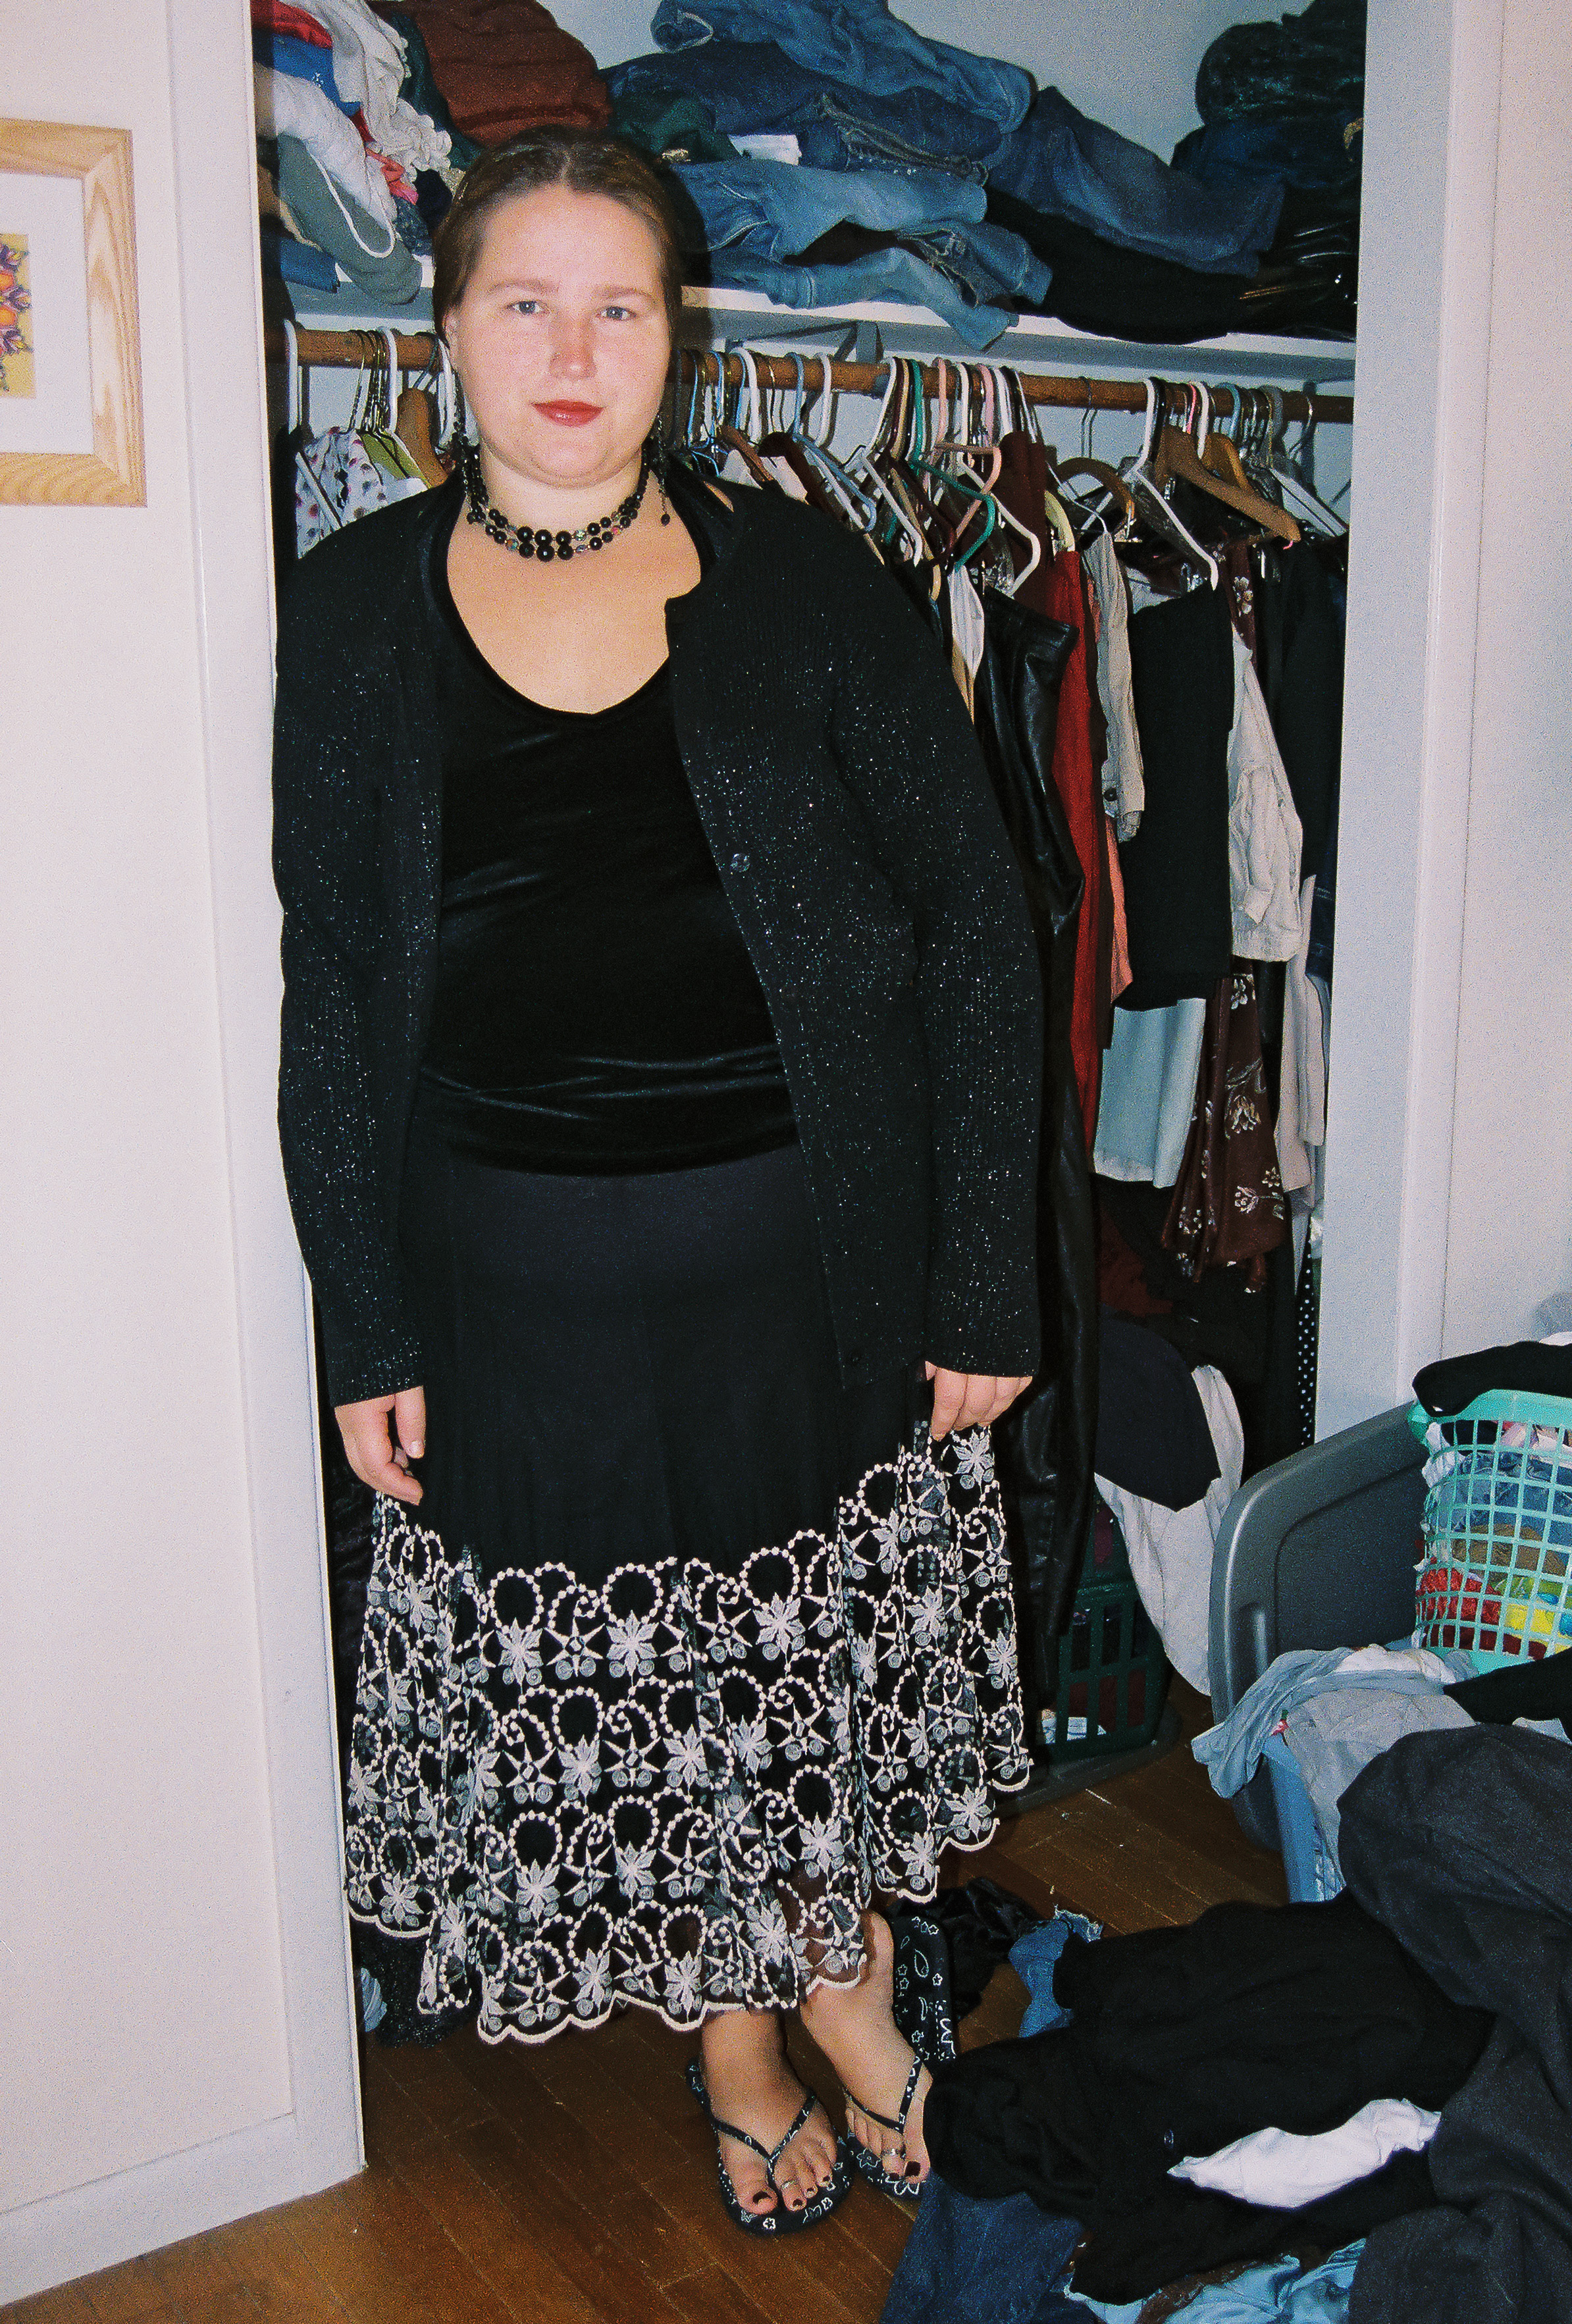 Figure 1. Rachael Himsel standing in front of her closet.